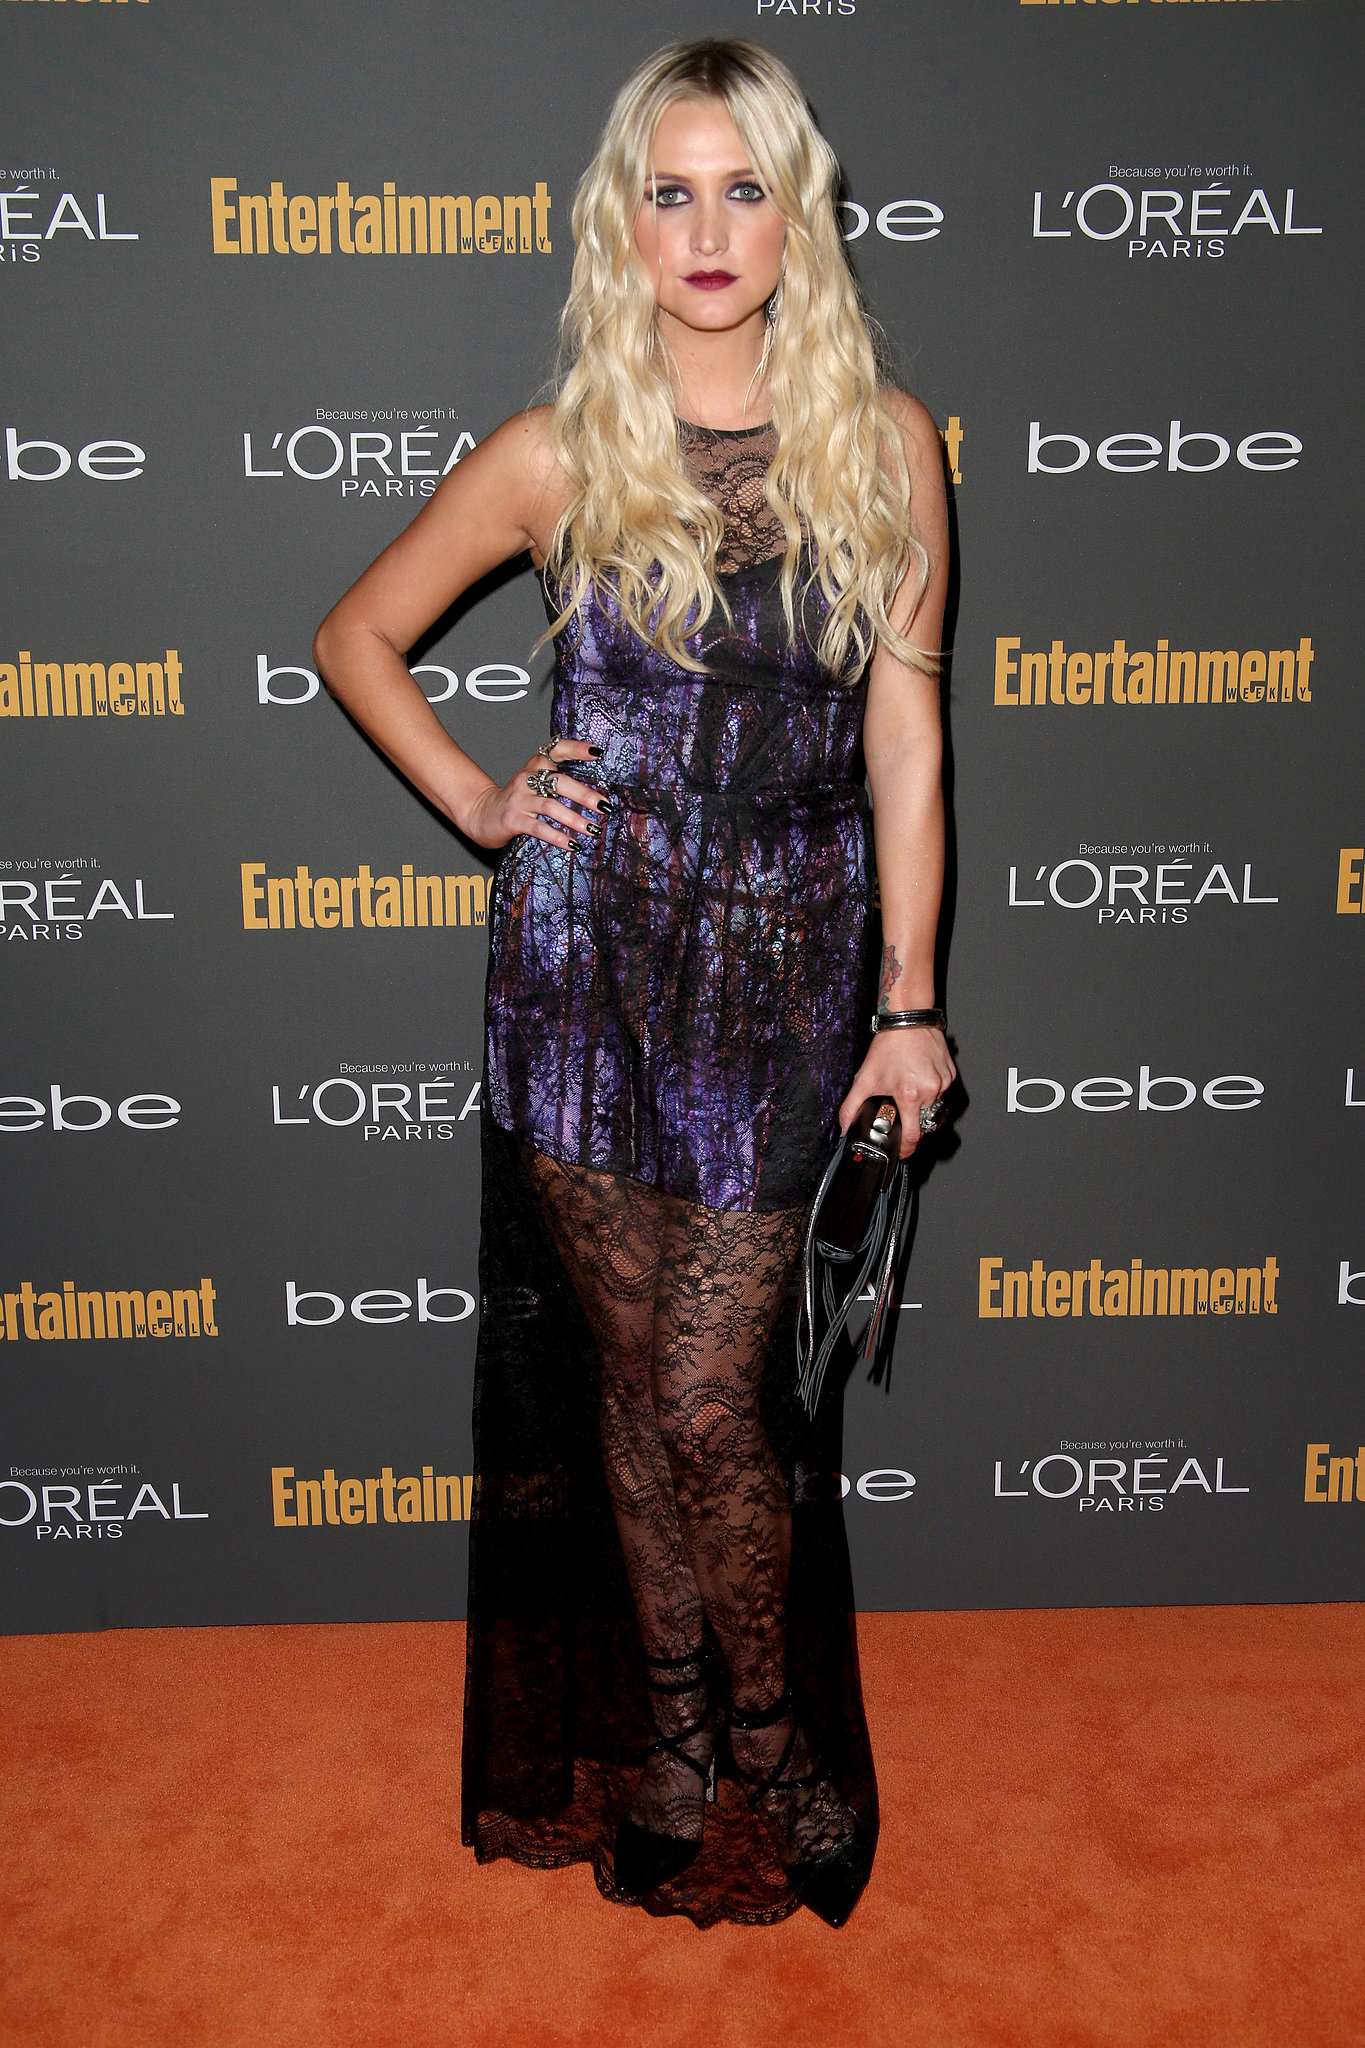 Ashlee Simpson kept it goth in a printed dress with a black l